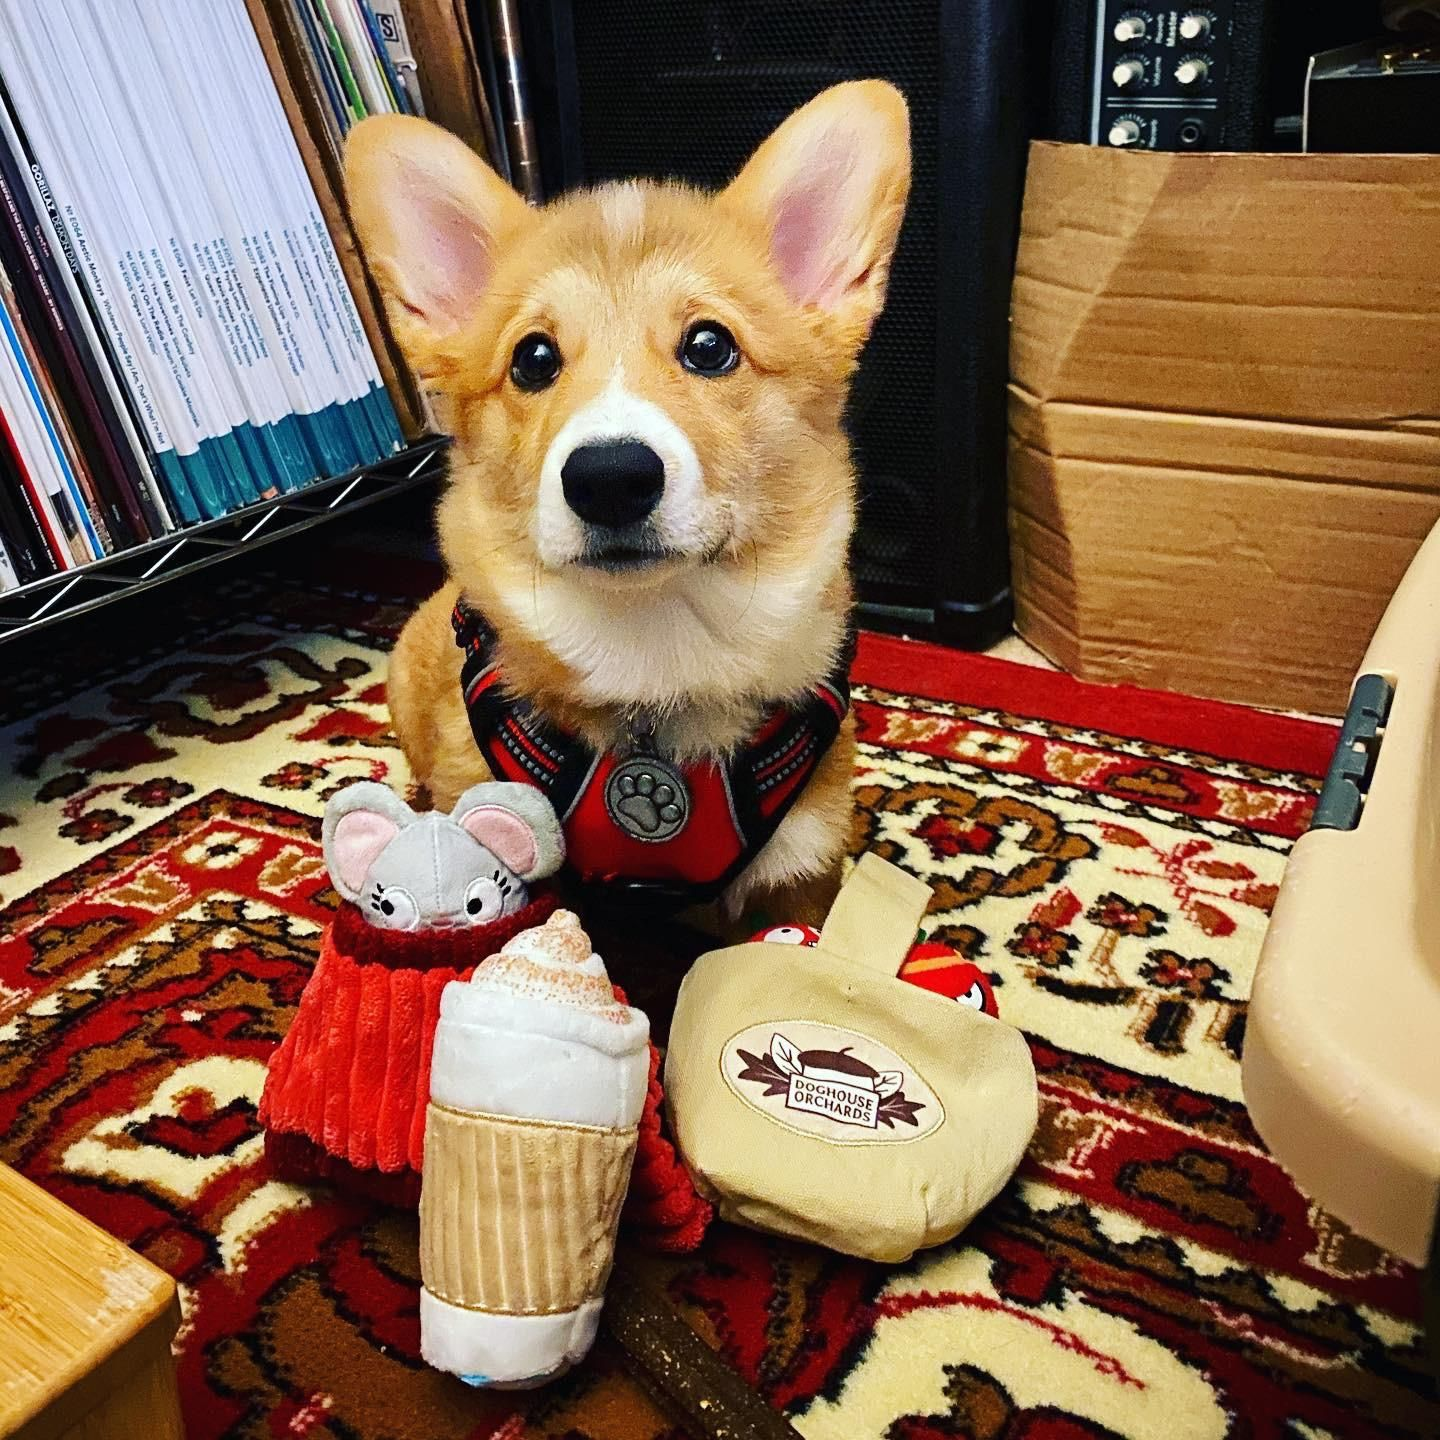 Our sweet boy Ein with his first Barkbox!